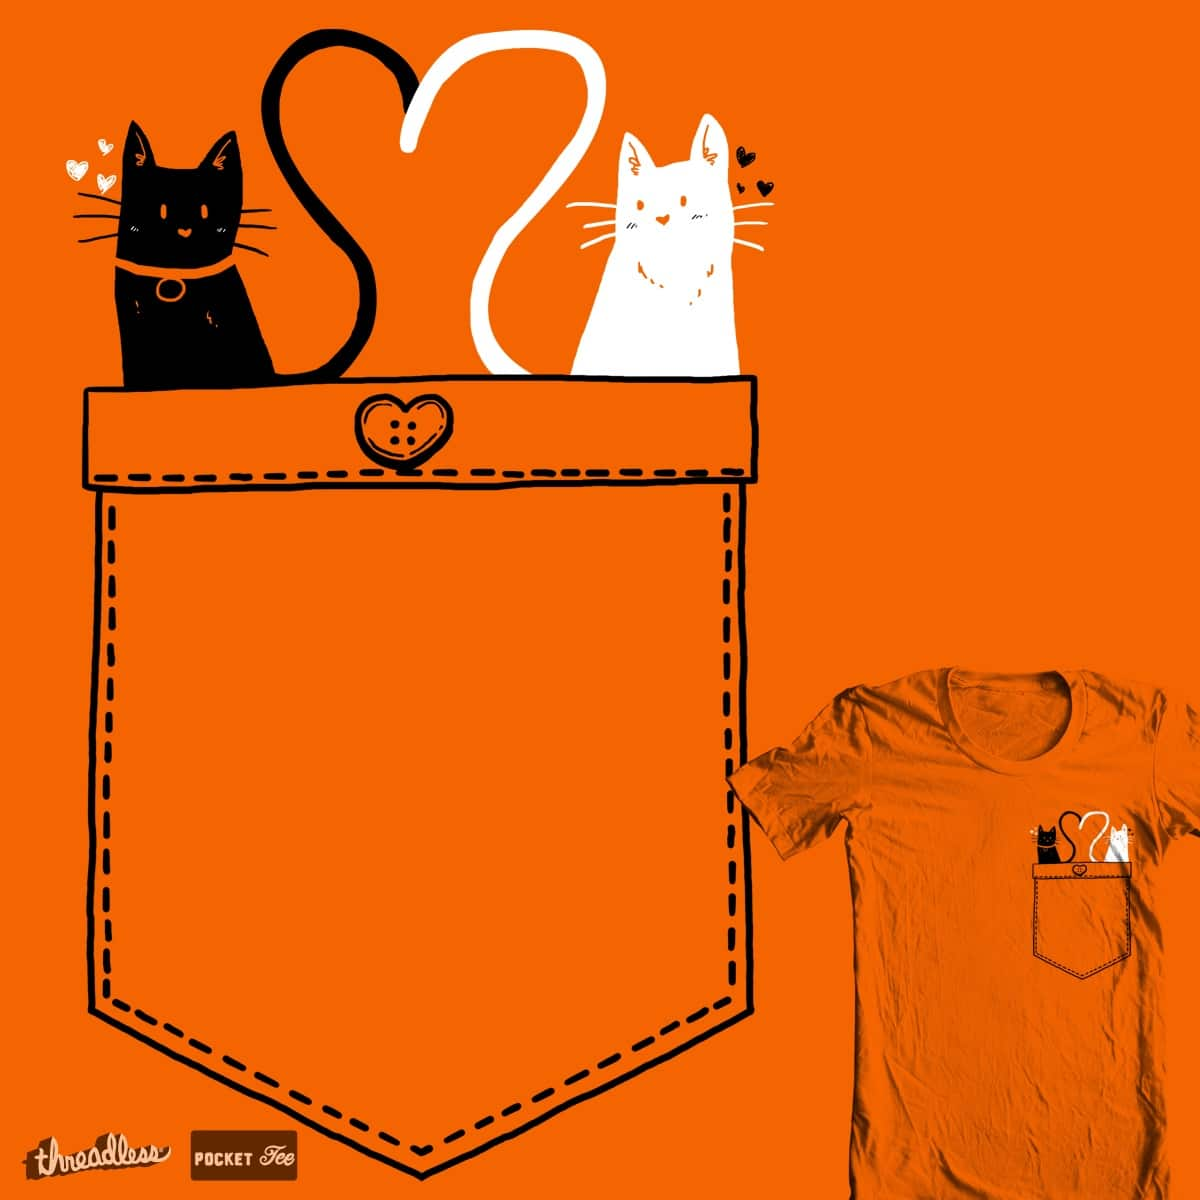 poCATs Love by tobiasfonseca on Threadless